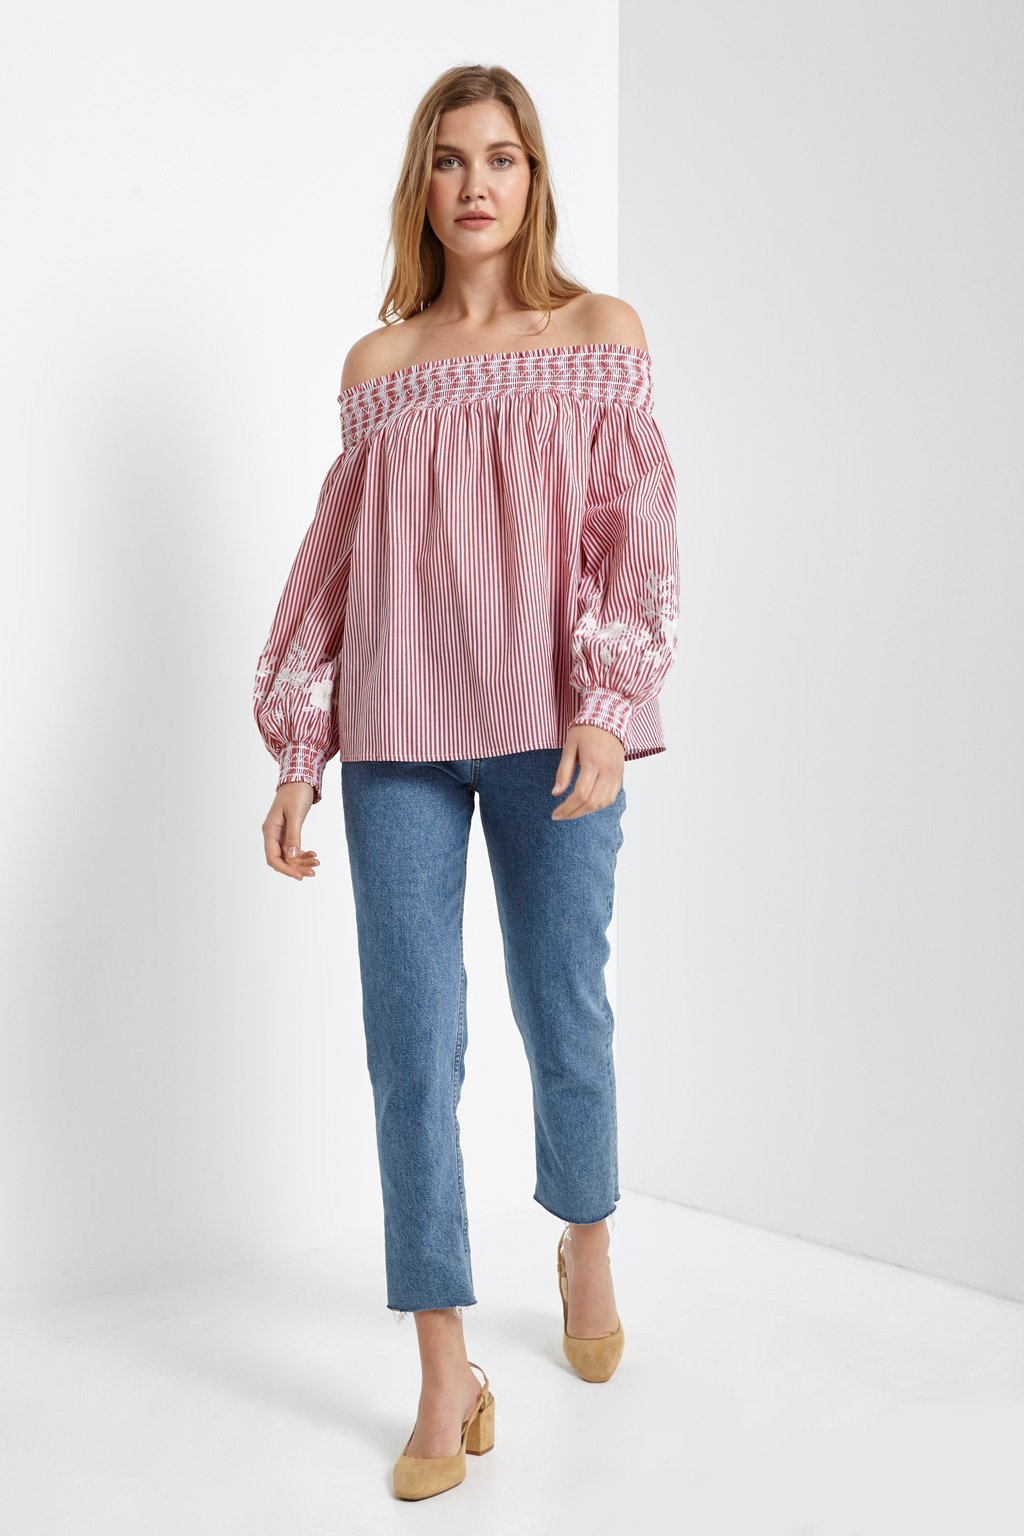 Poshsquare Tops Off The Shoulder Embroidered Pinstripe Blouse